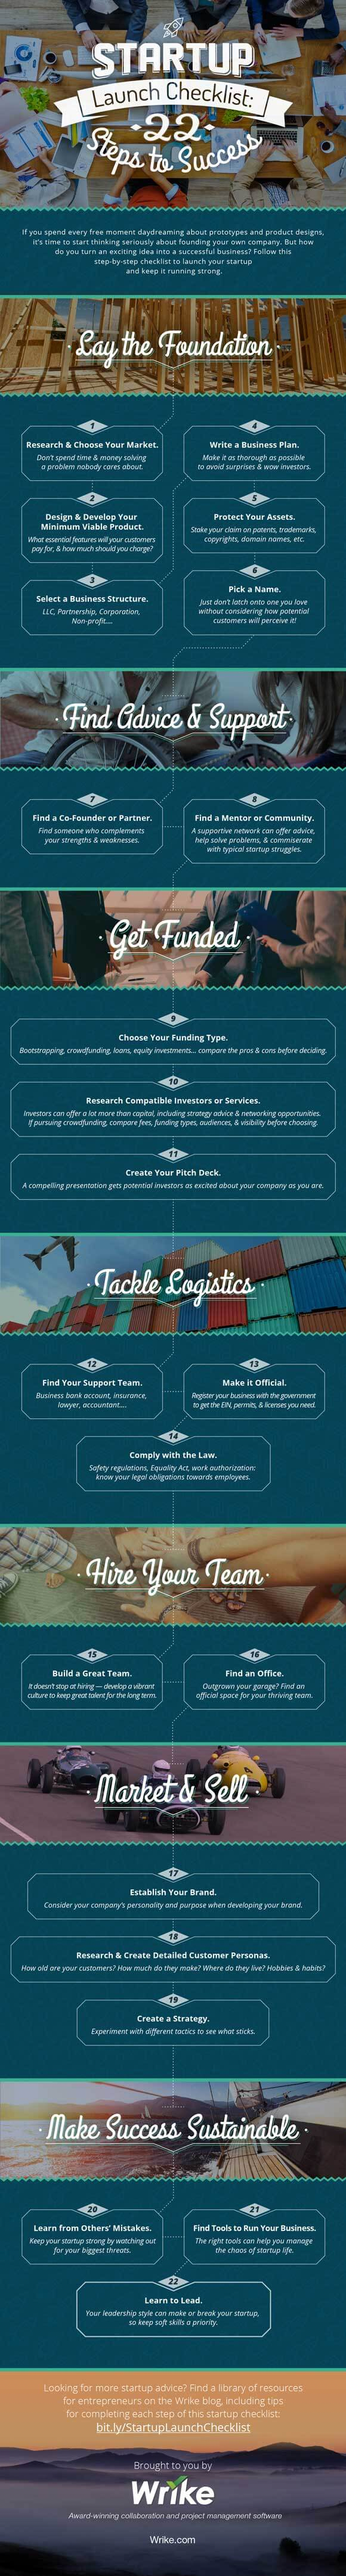 ds-startup-launch-infograph